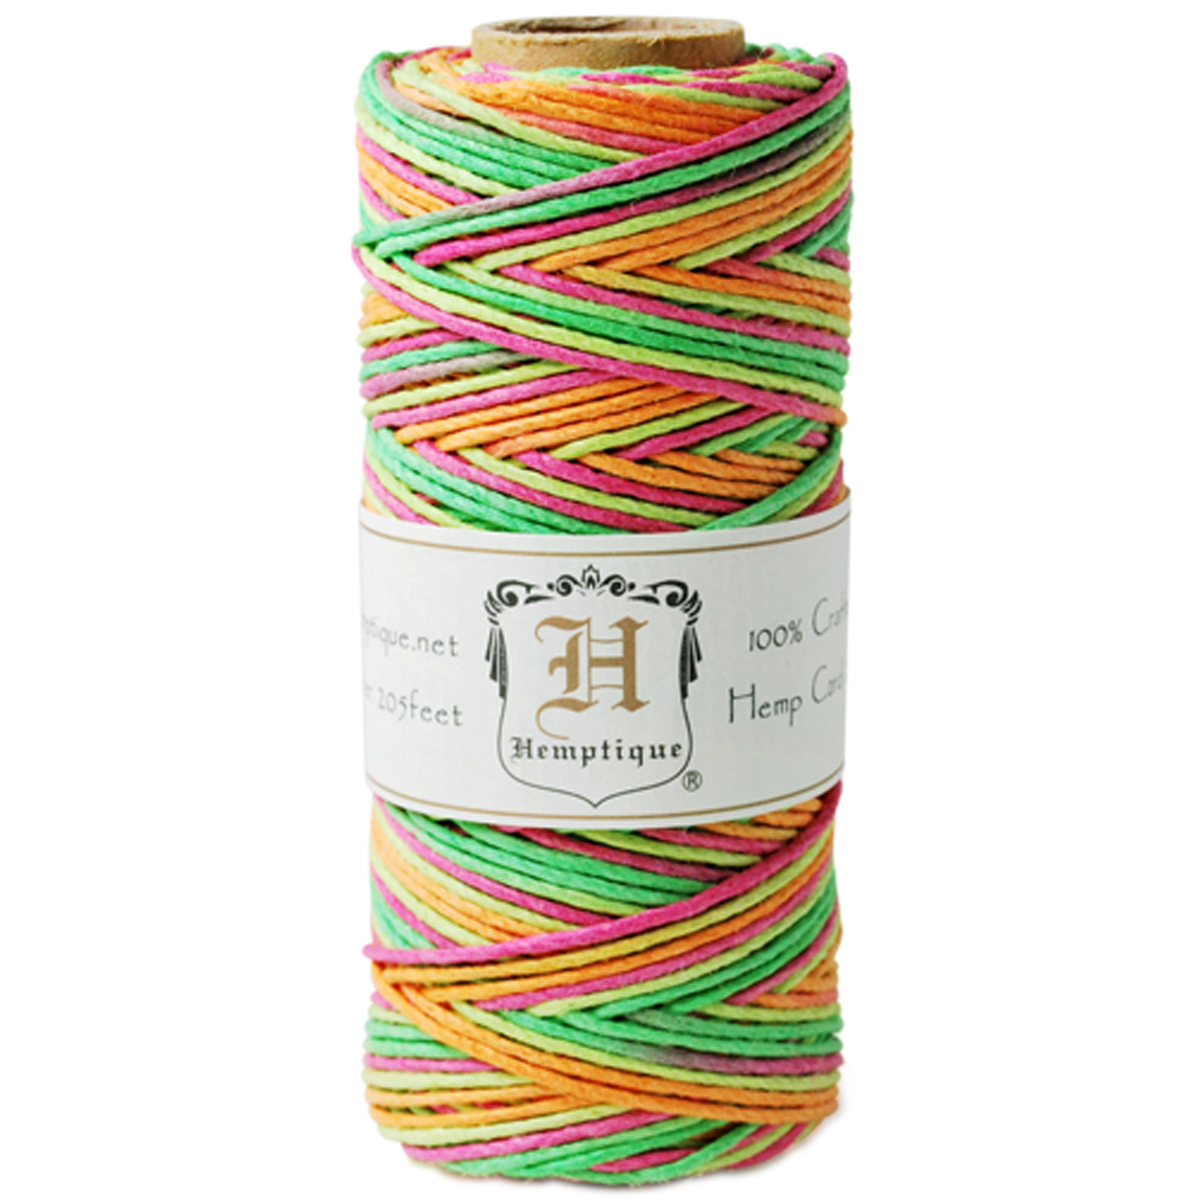 Hemp Variegated Cord Spool 20lb 205'-Neon